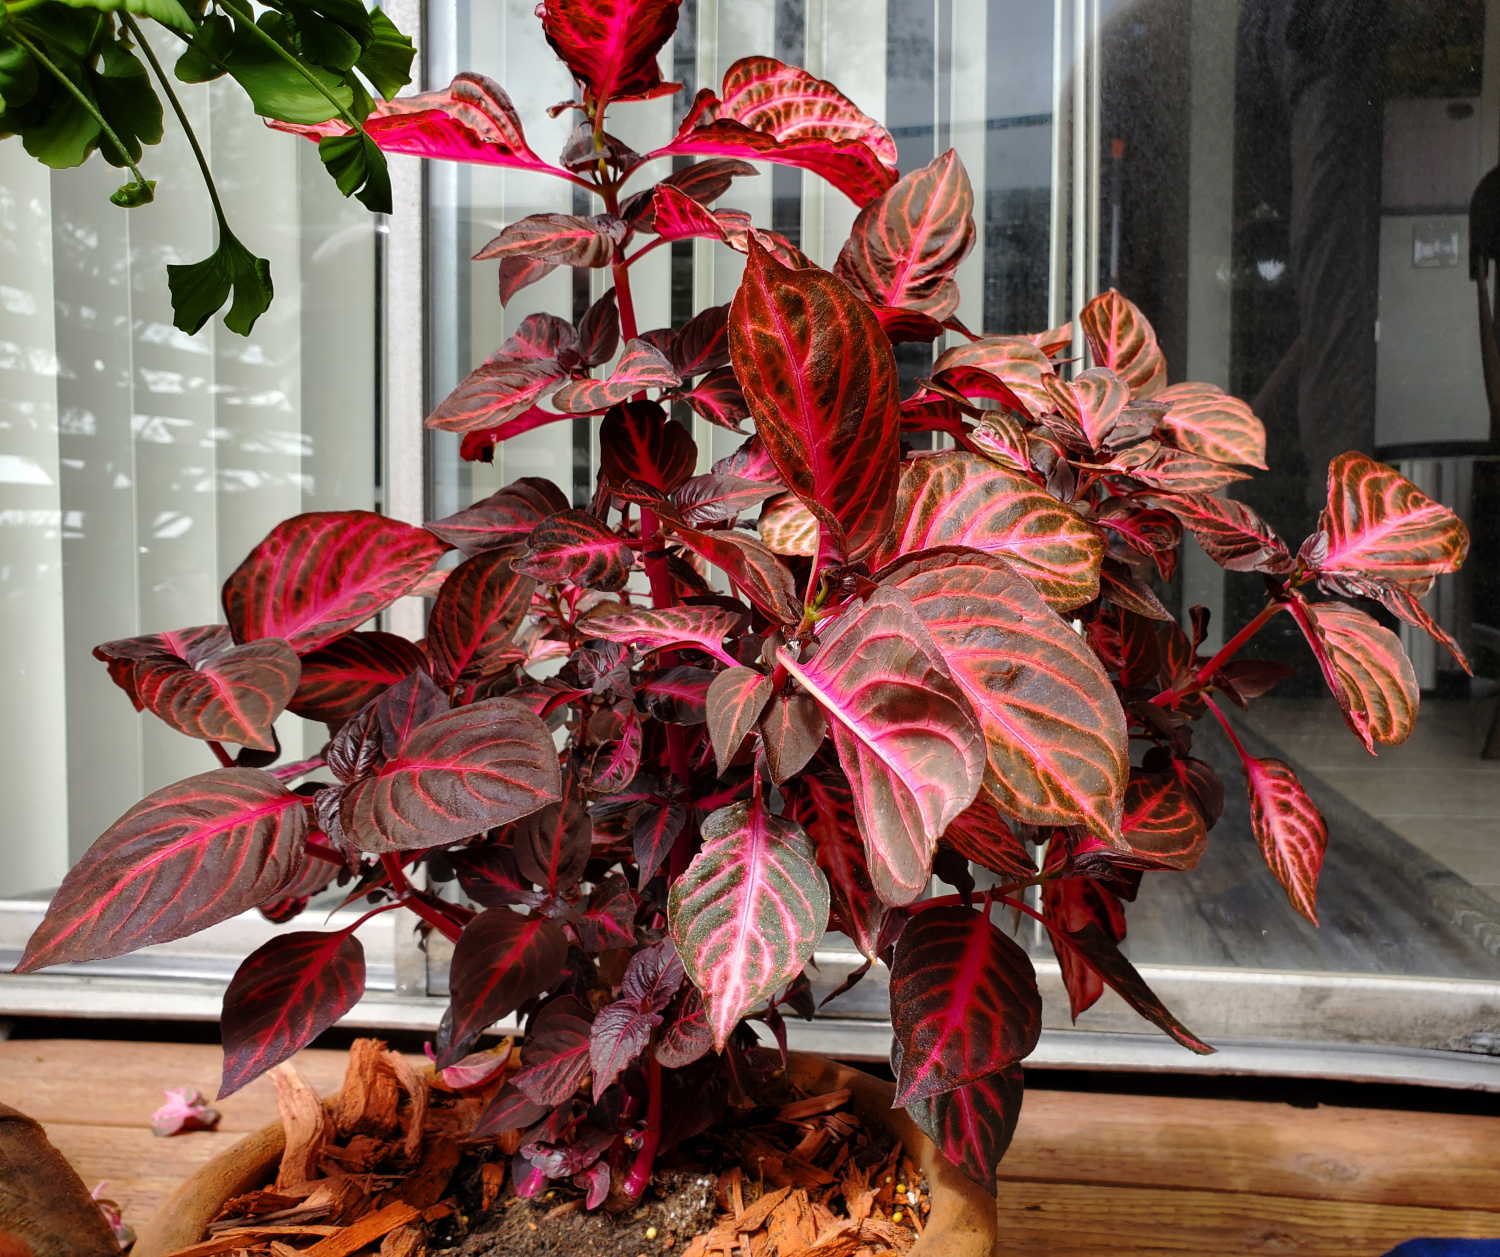 The bloodleaf is getting pretty tall!